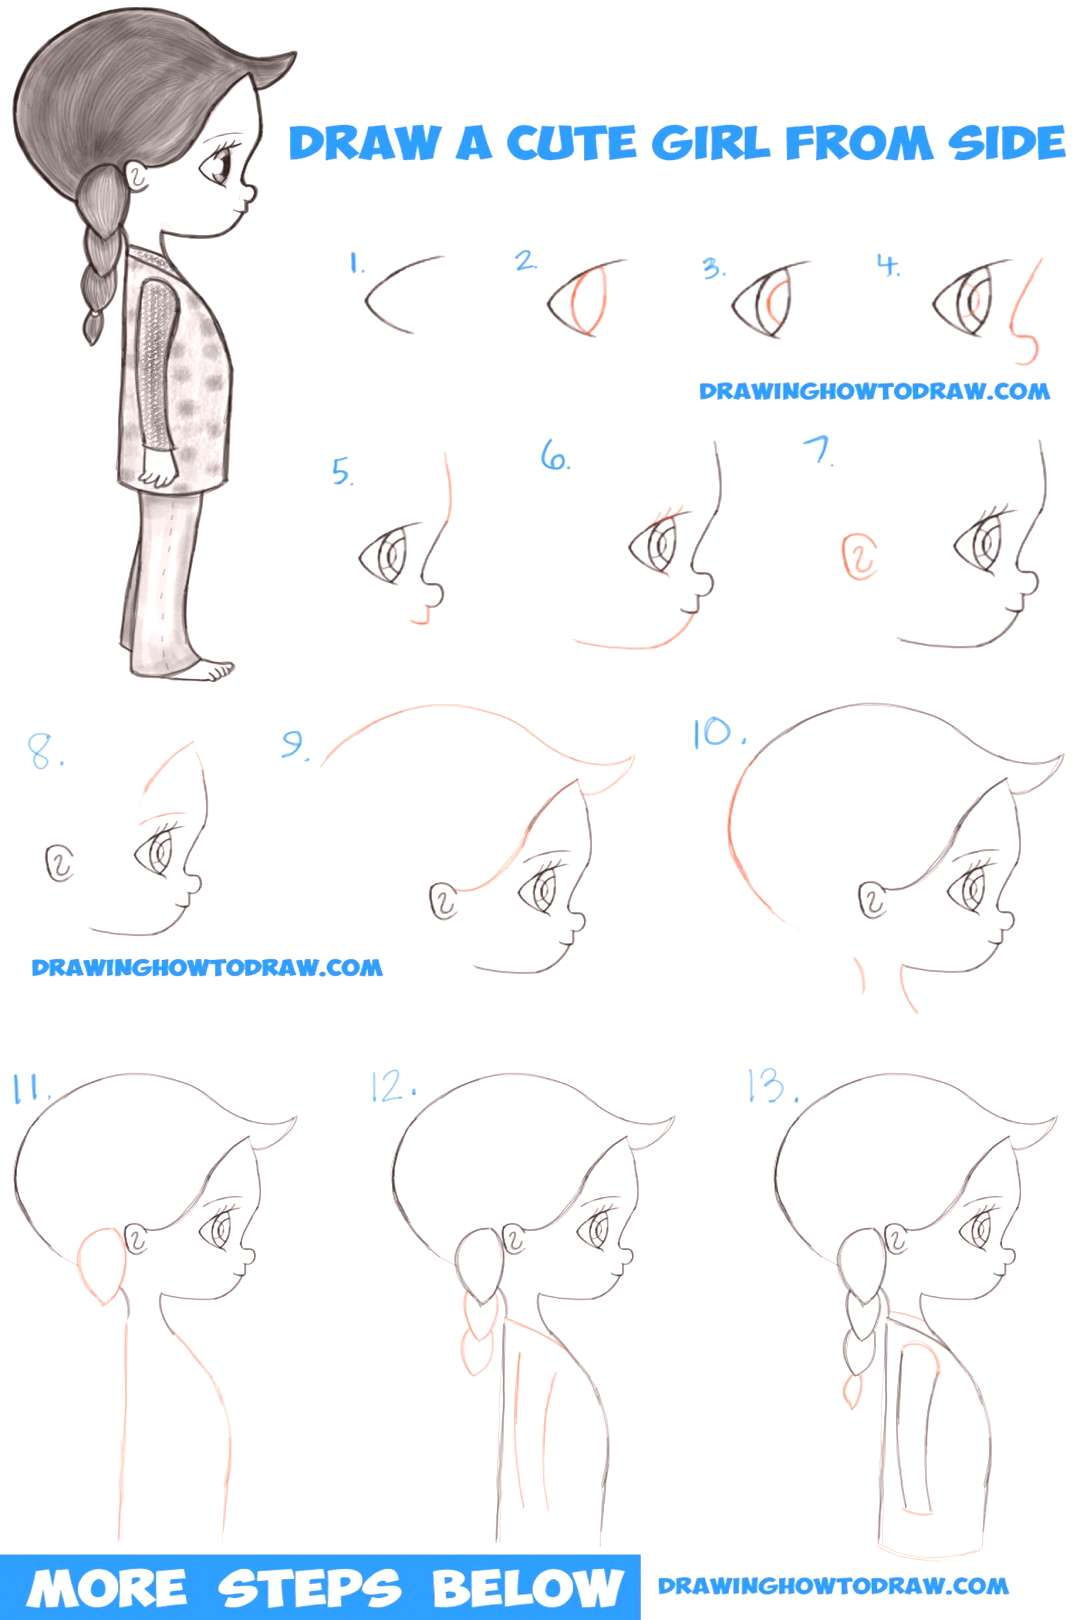 How to Draw a Cute Chibi / Manga / Anime Girl from the Side View Easy Step by Step Drawing Tu...